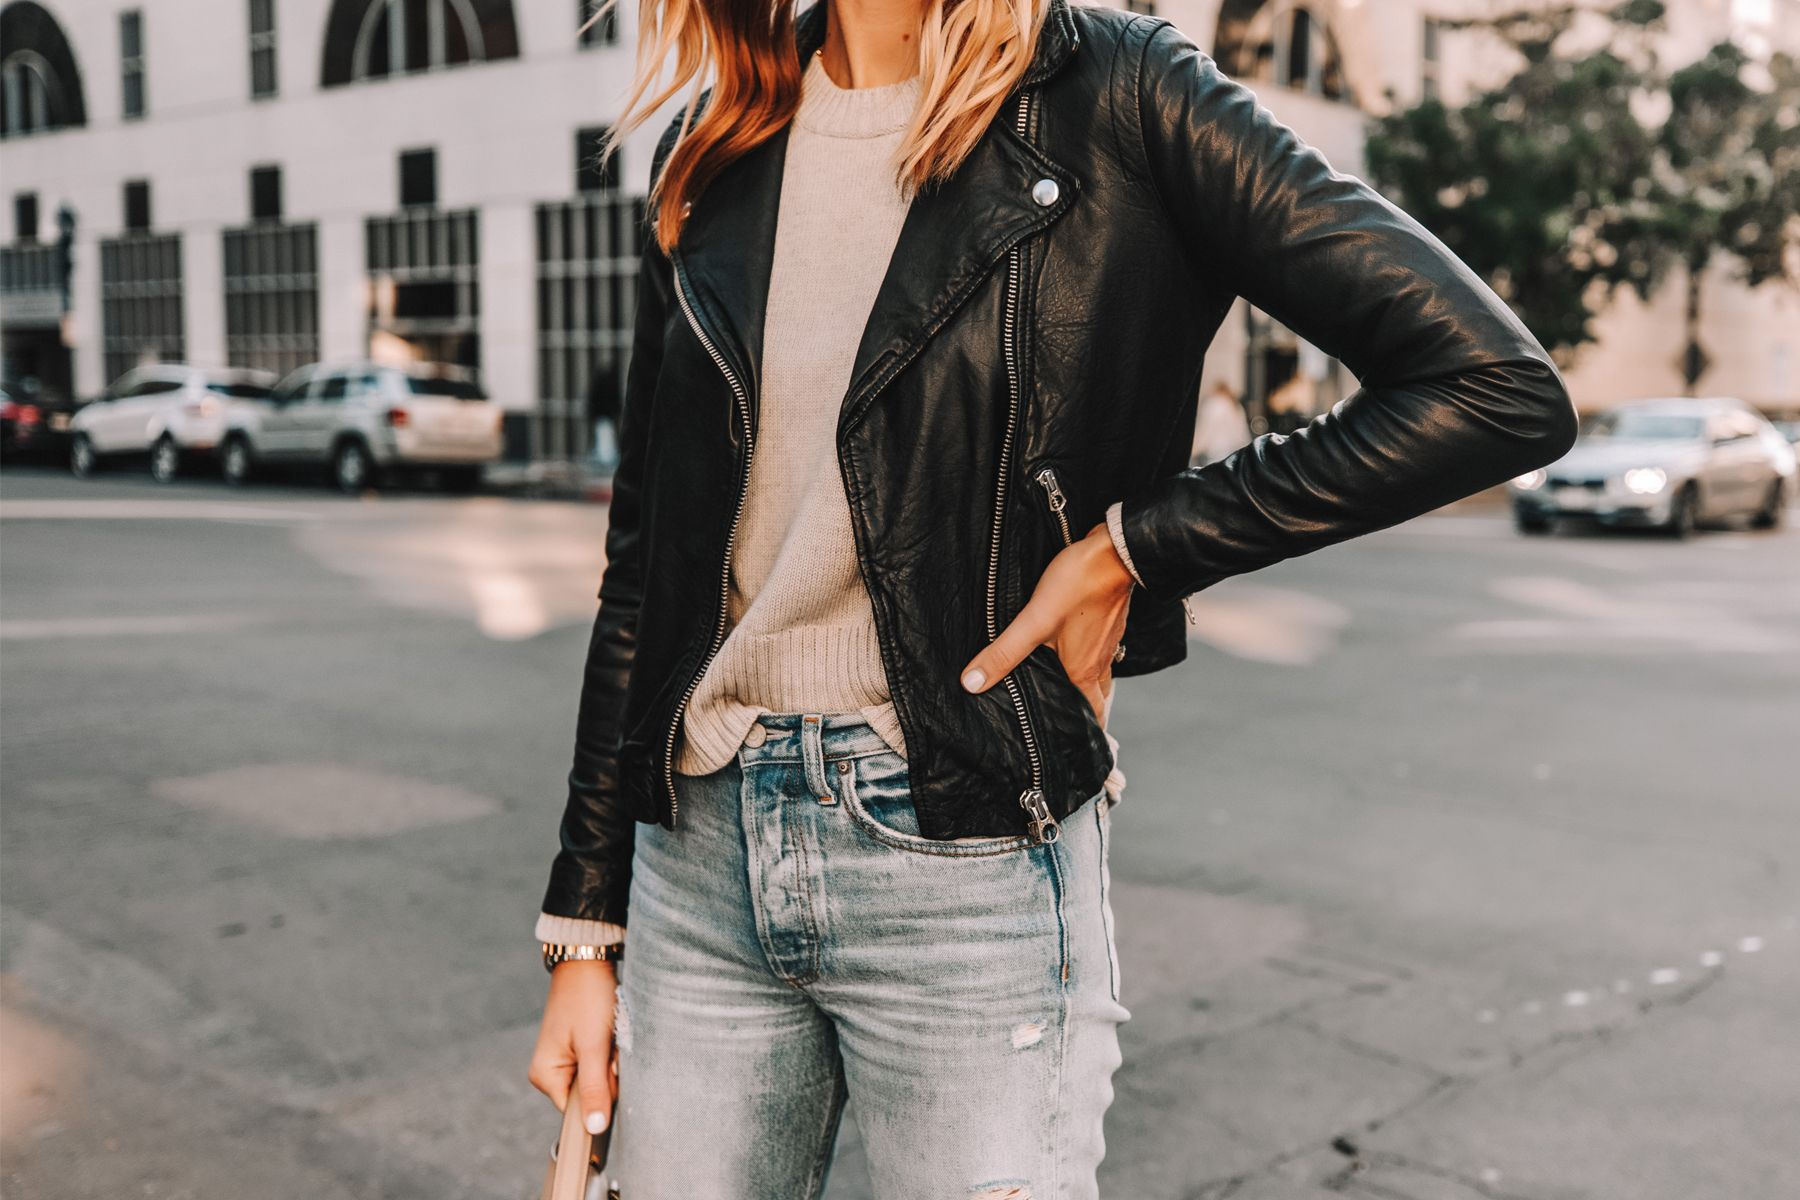 Fashion Jackson Wearing Madewell Black Leather Jacket Grey Sweater Ripped Jeans Jacket Outfit Women Leather Jacket Style Suede Jacket Women [ 1200 x 1800 Pixel ]